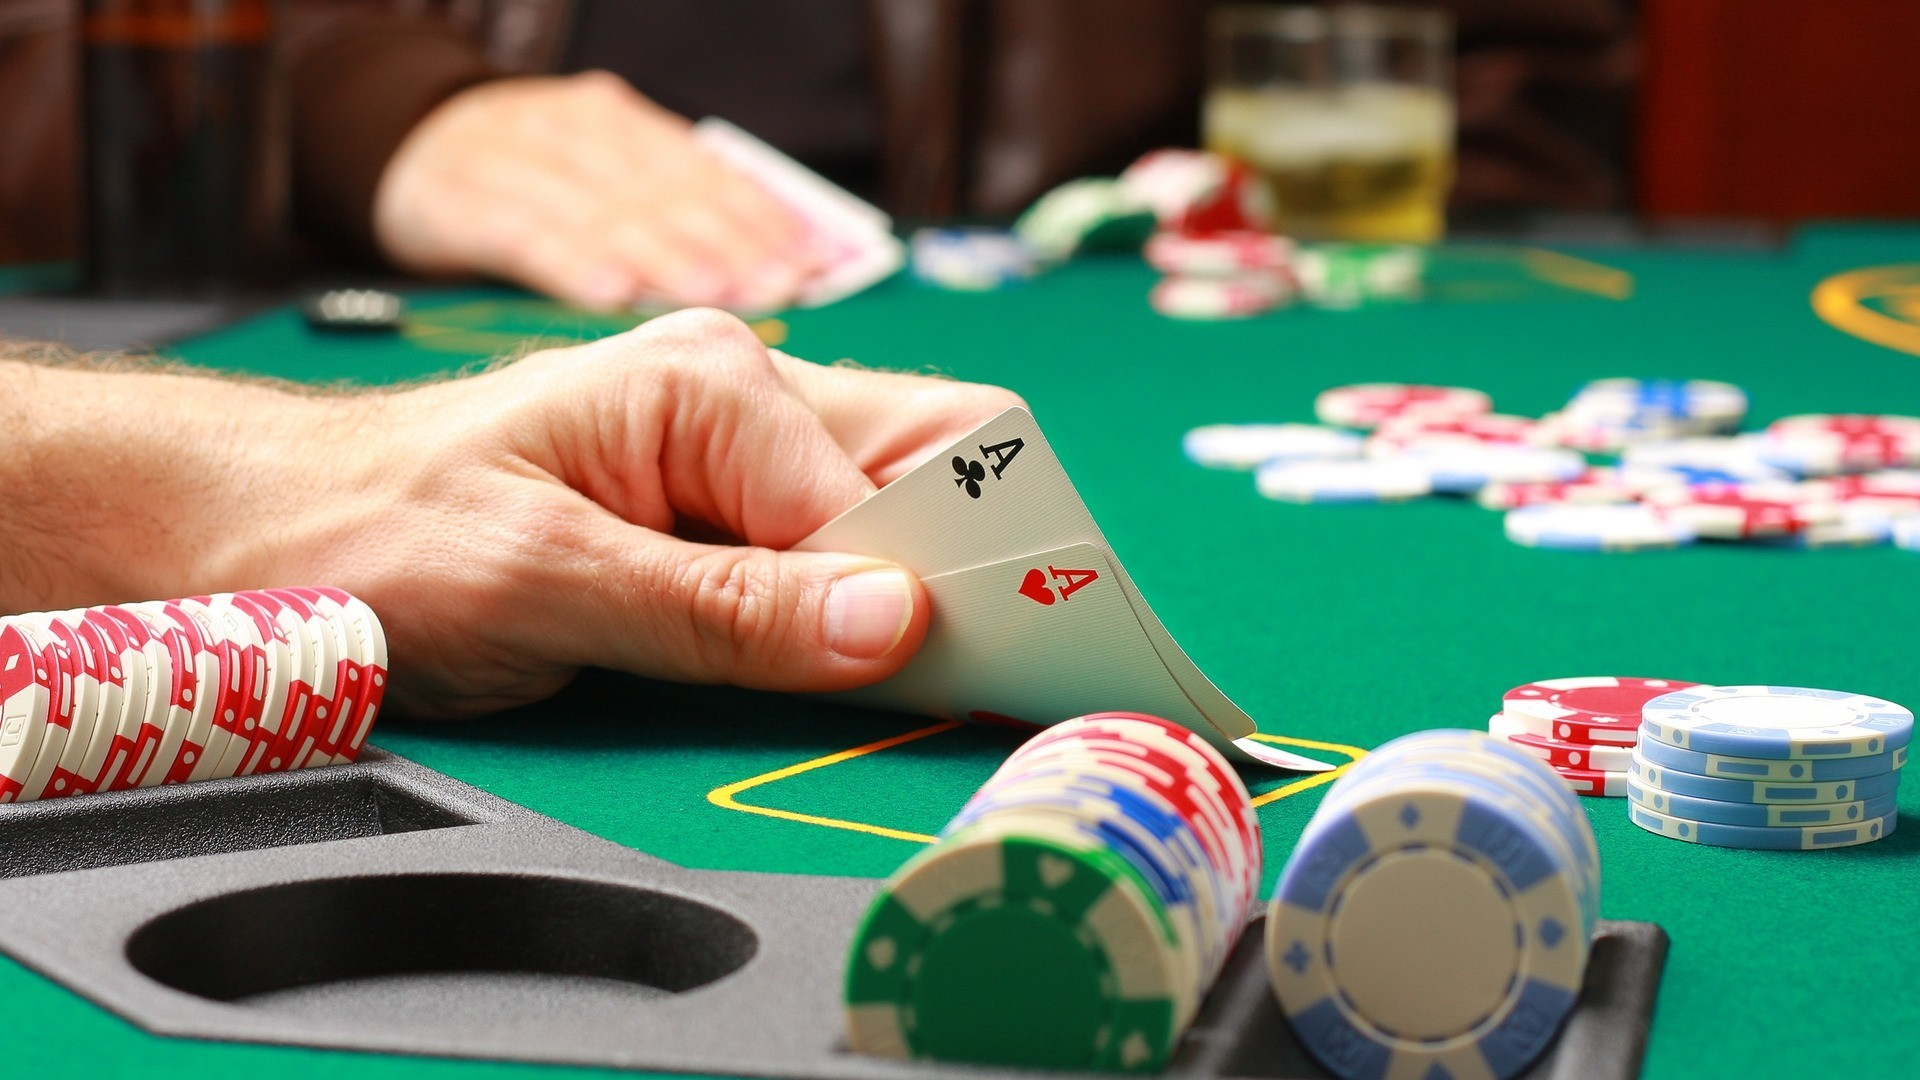 The Best Way To Make Extra Casino By Doing Less